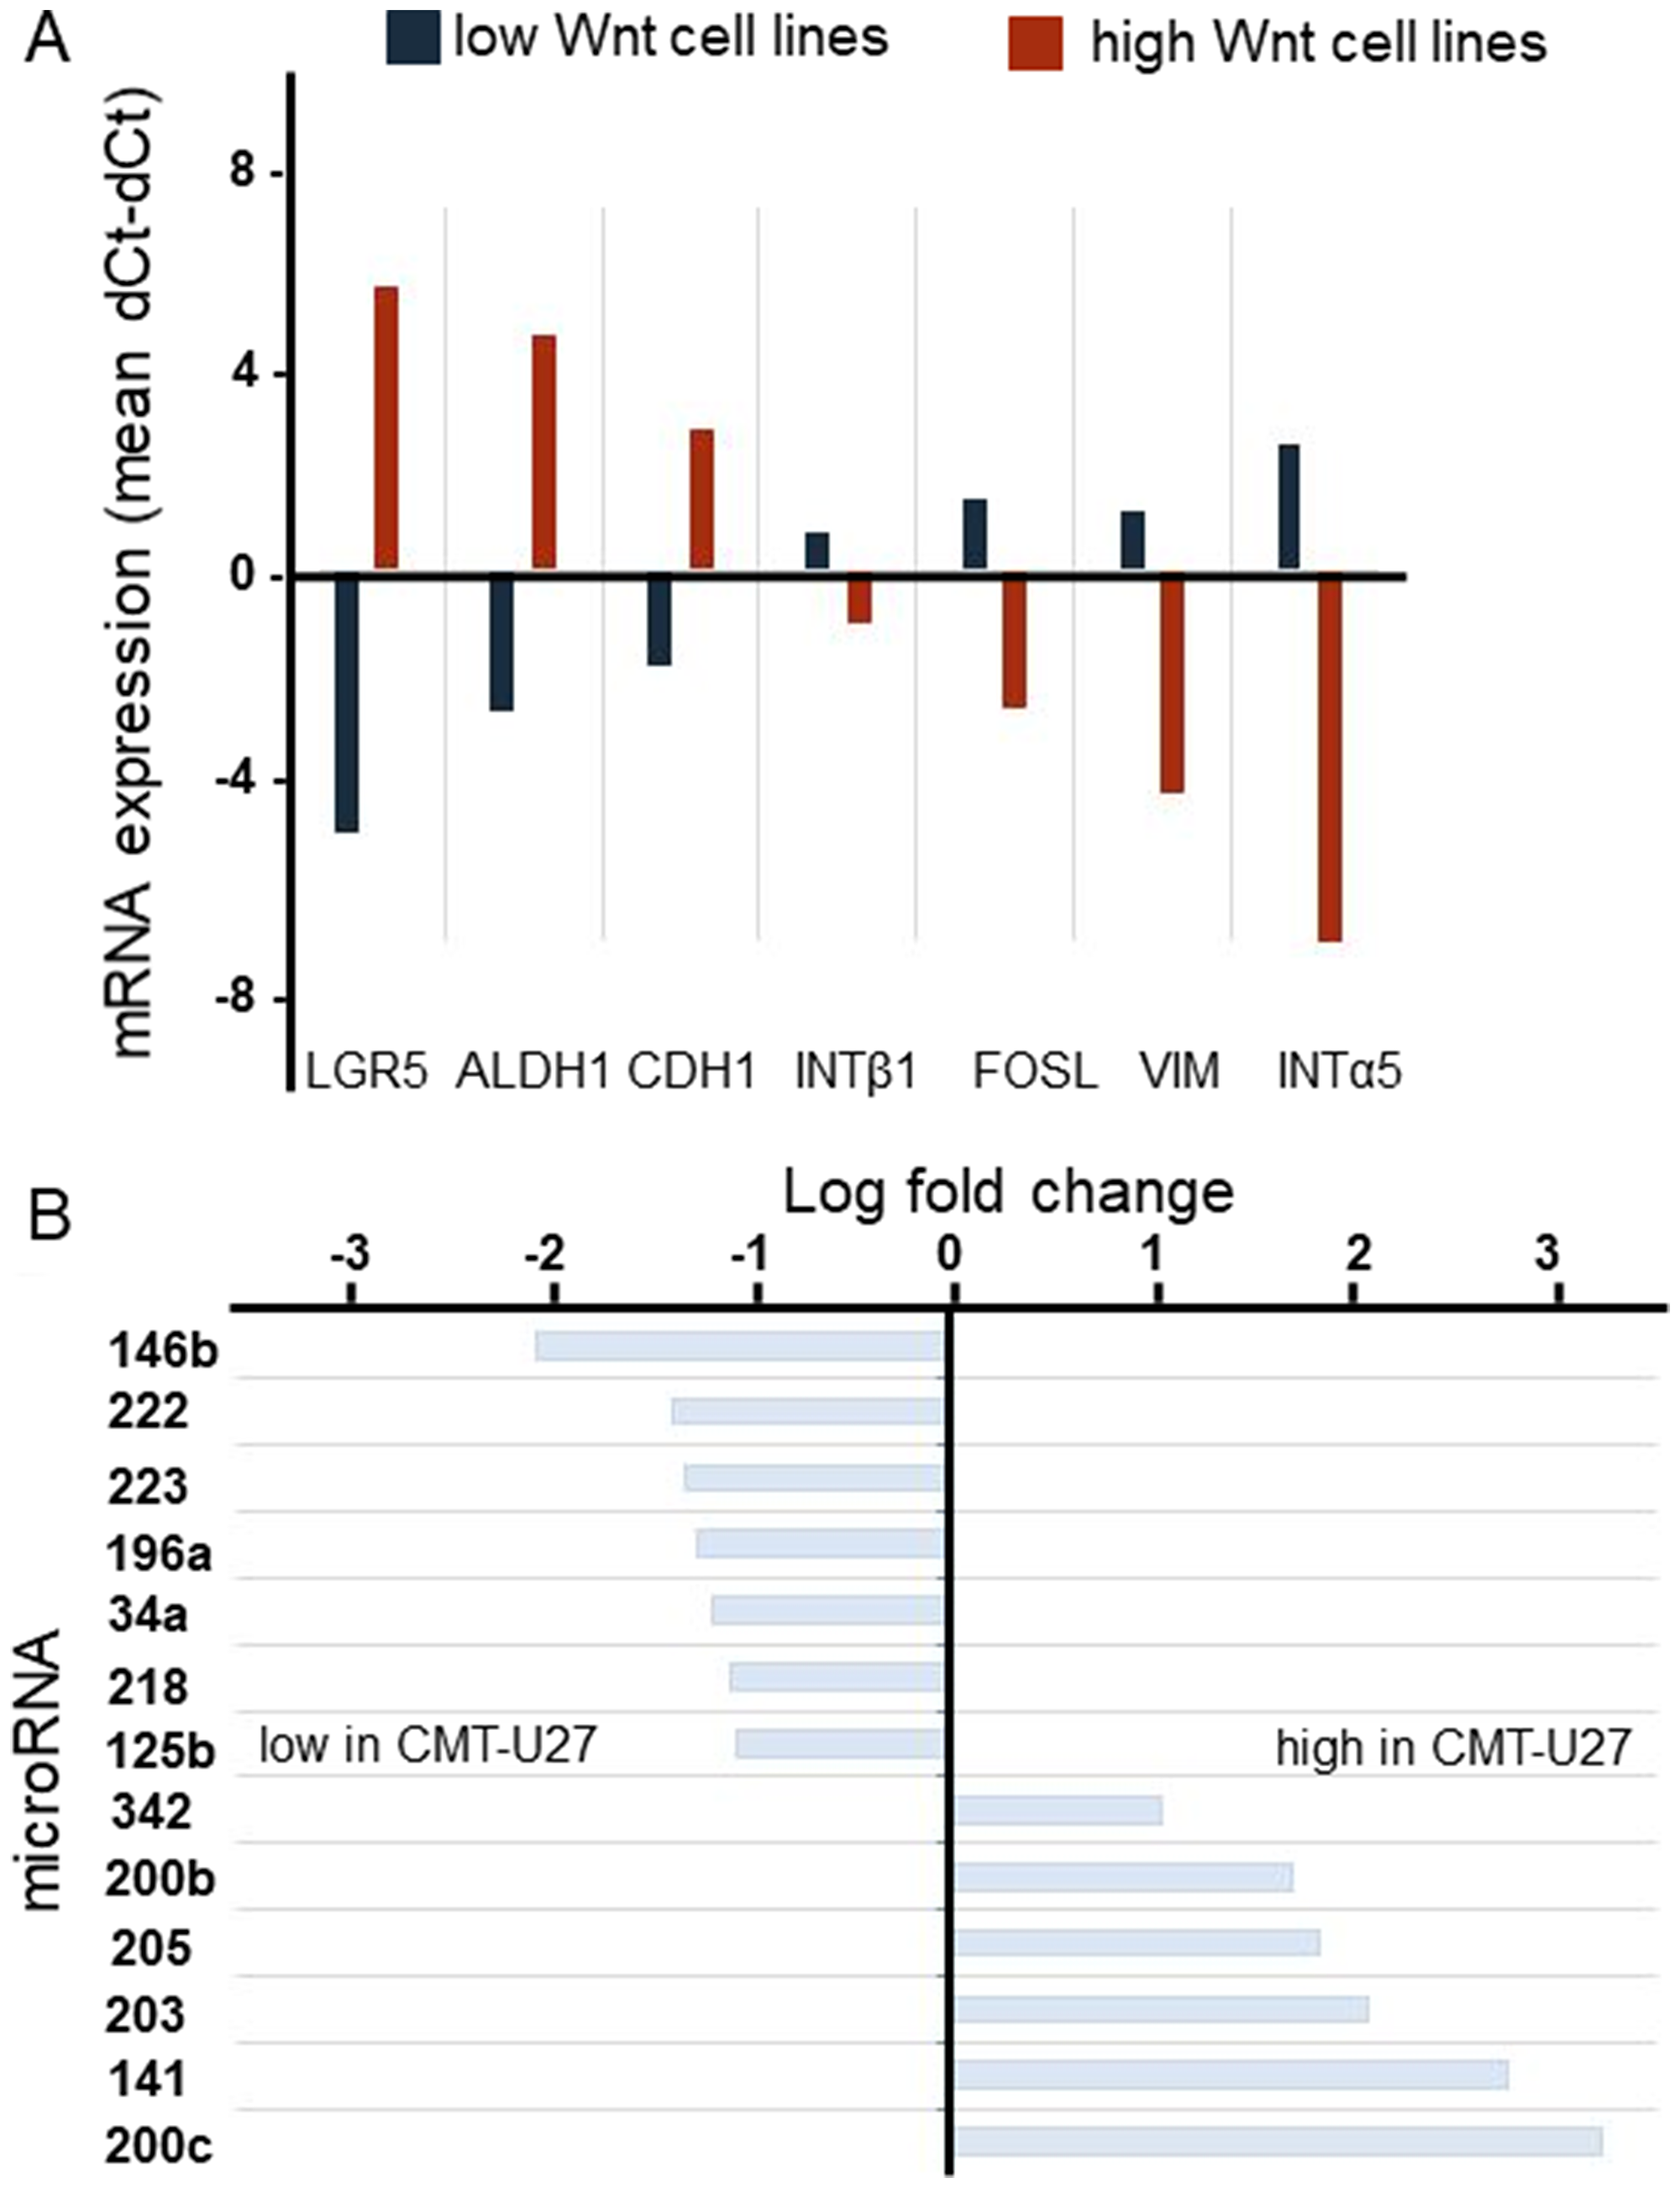 Oncotarget | P-cadherin mutations are associated with high basal Wnt